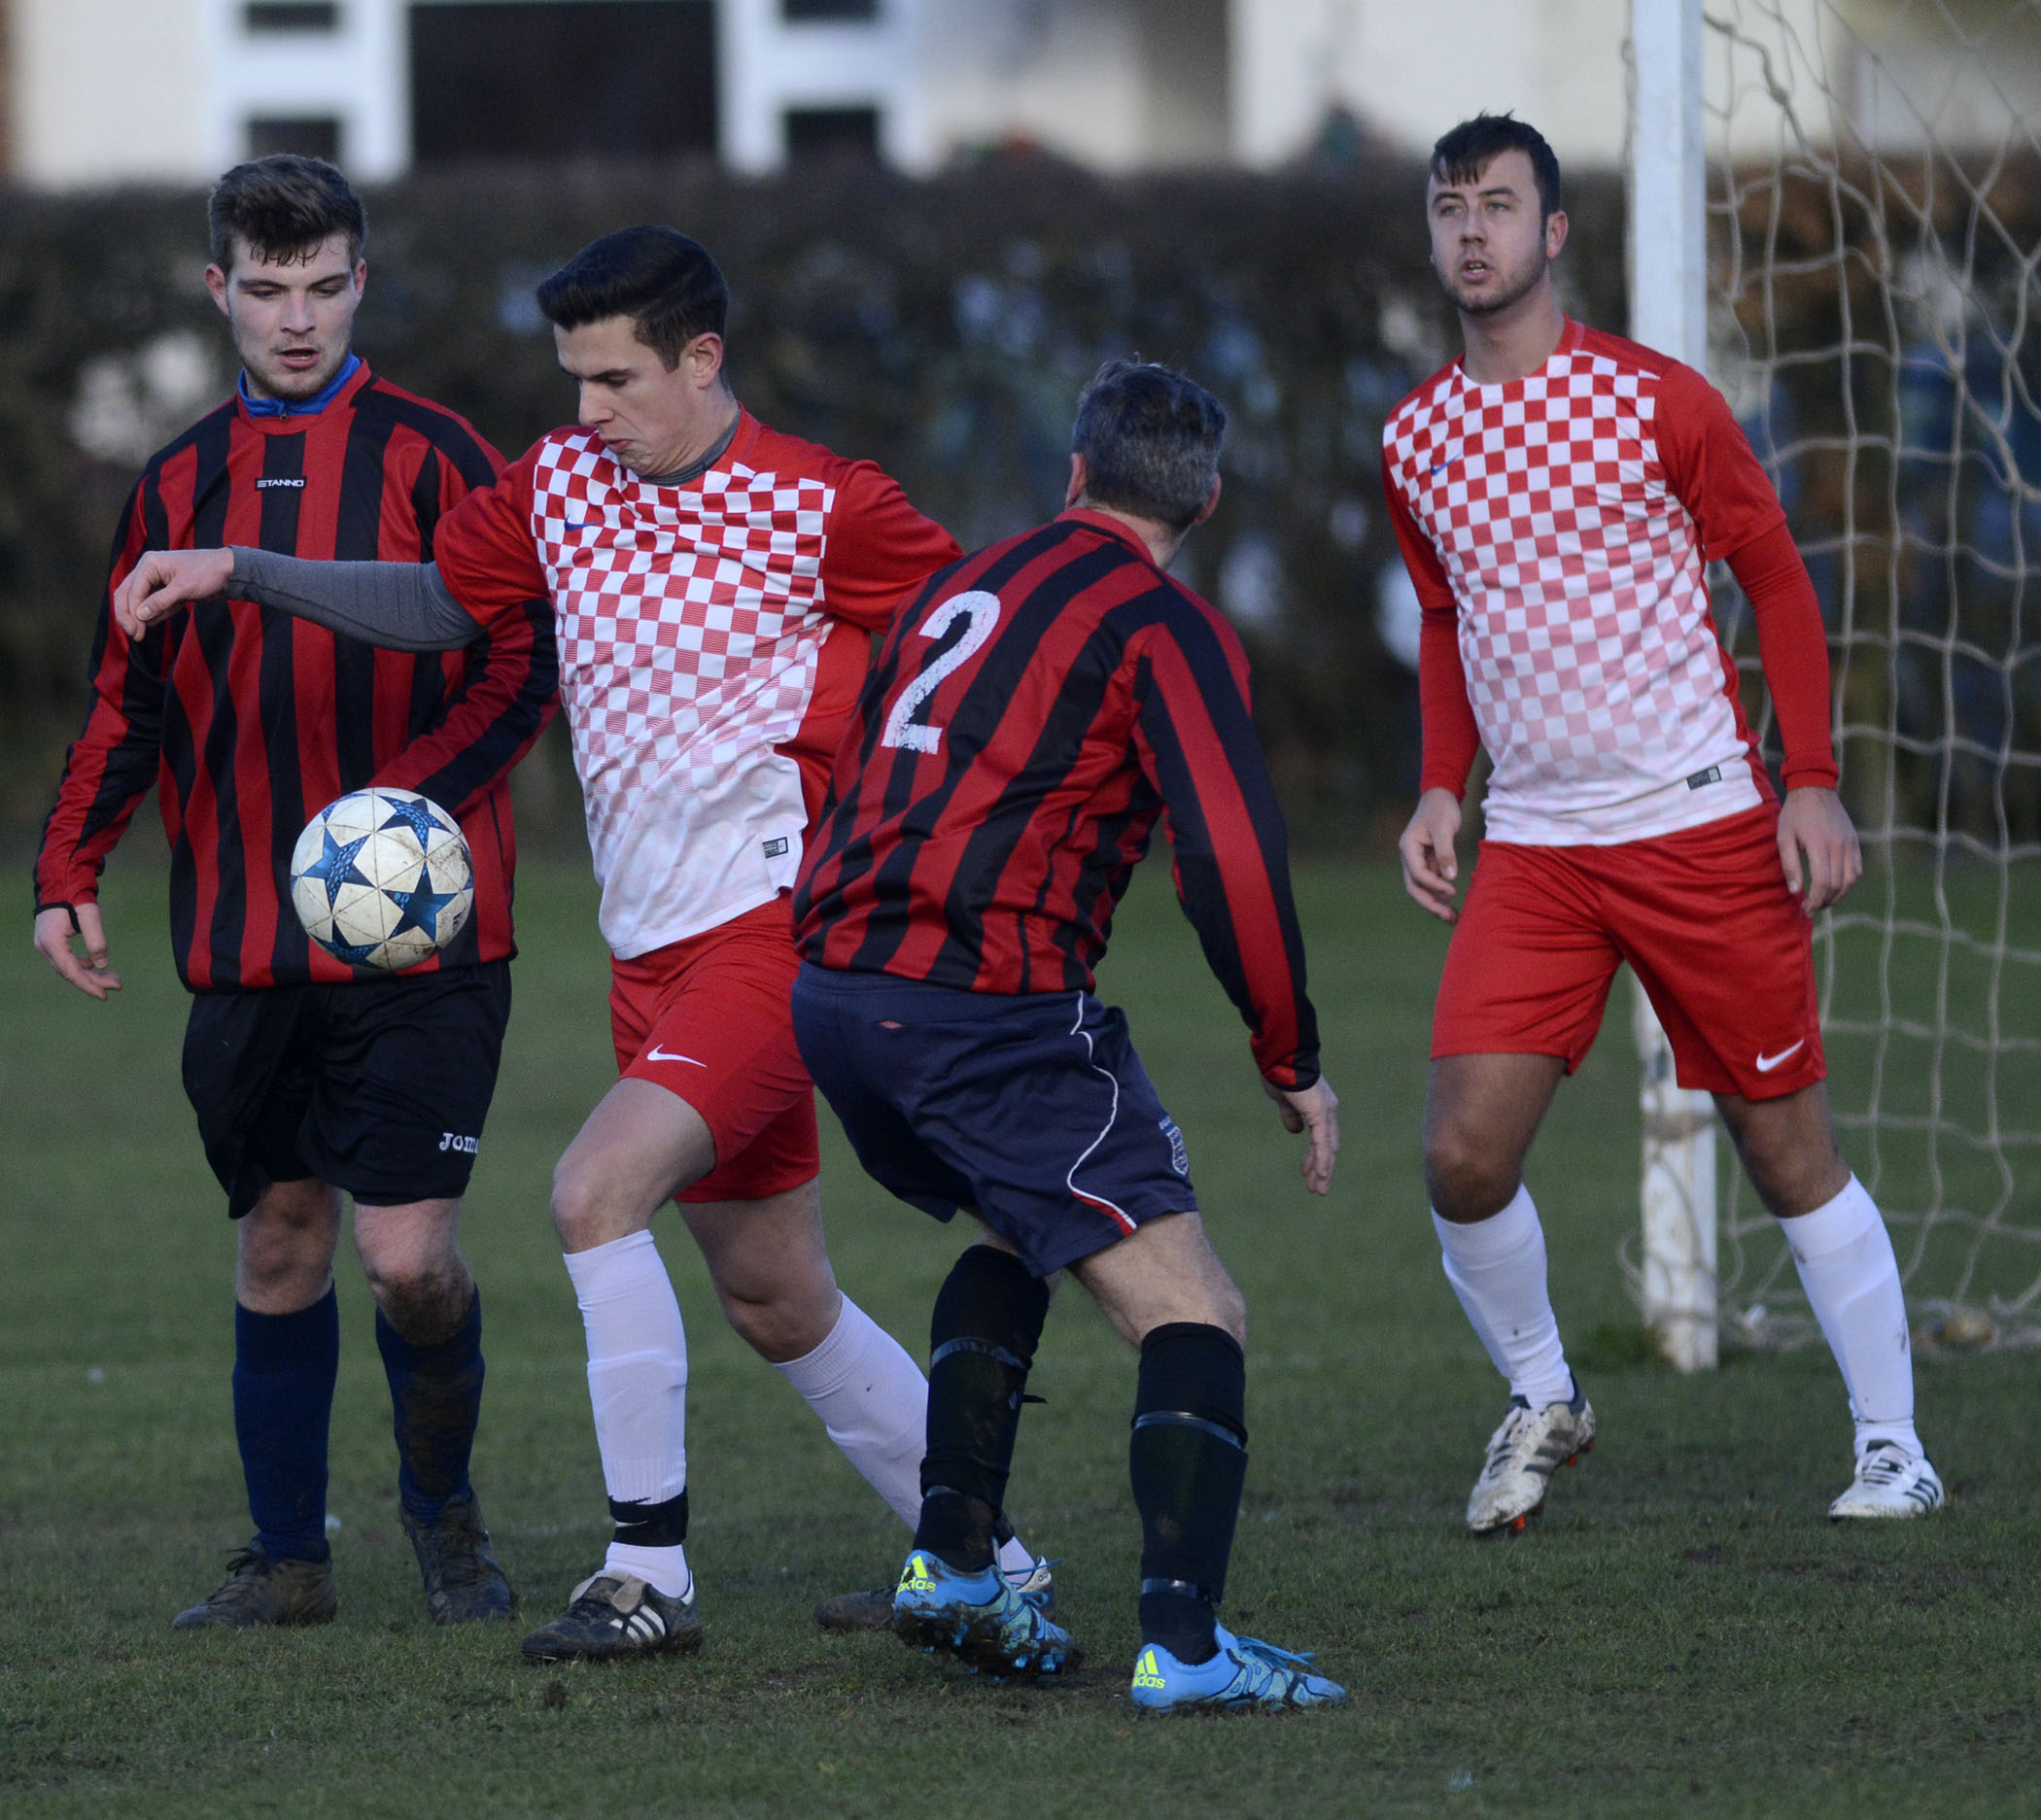 Langley Galaxy (red and white) beat rivals Langley Old Boys (red and black) 6-2 at Kedermister Park on Sunday.